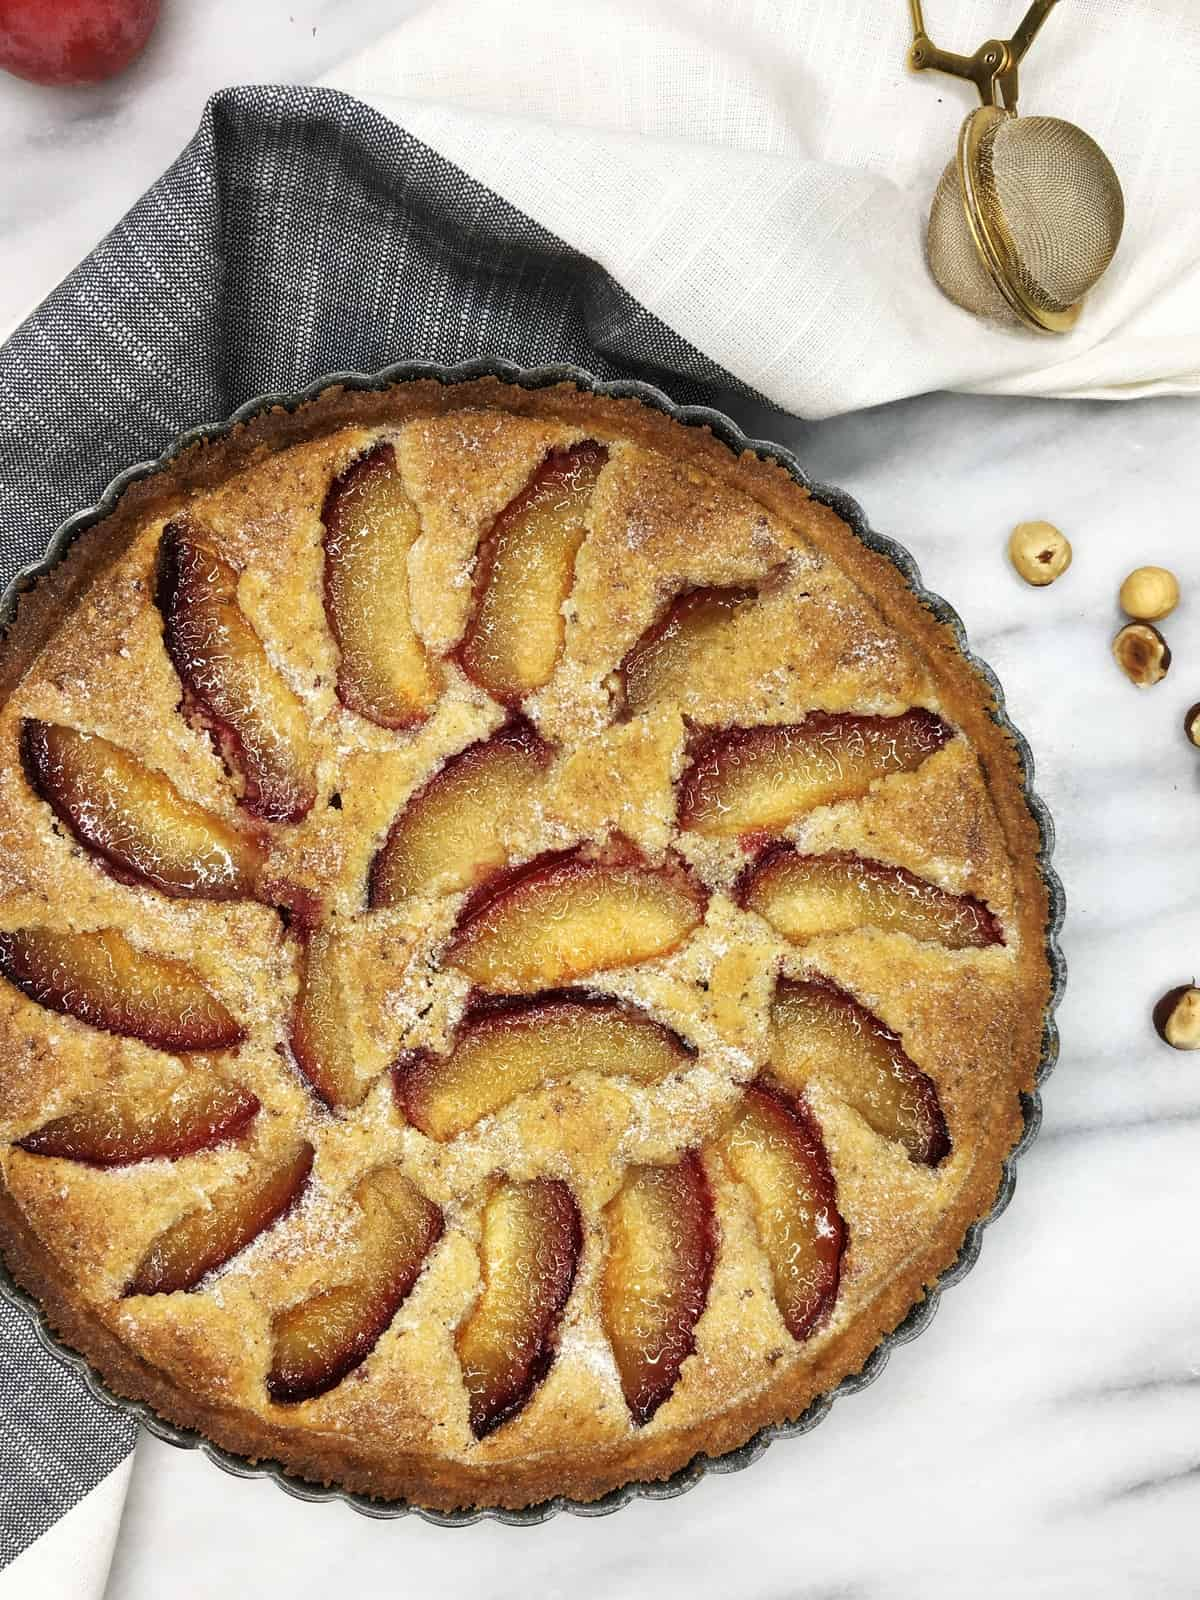 Plum tart in a tart tin with a towel and hazelnuts: Overhead view